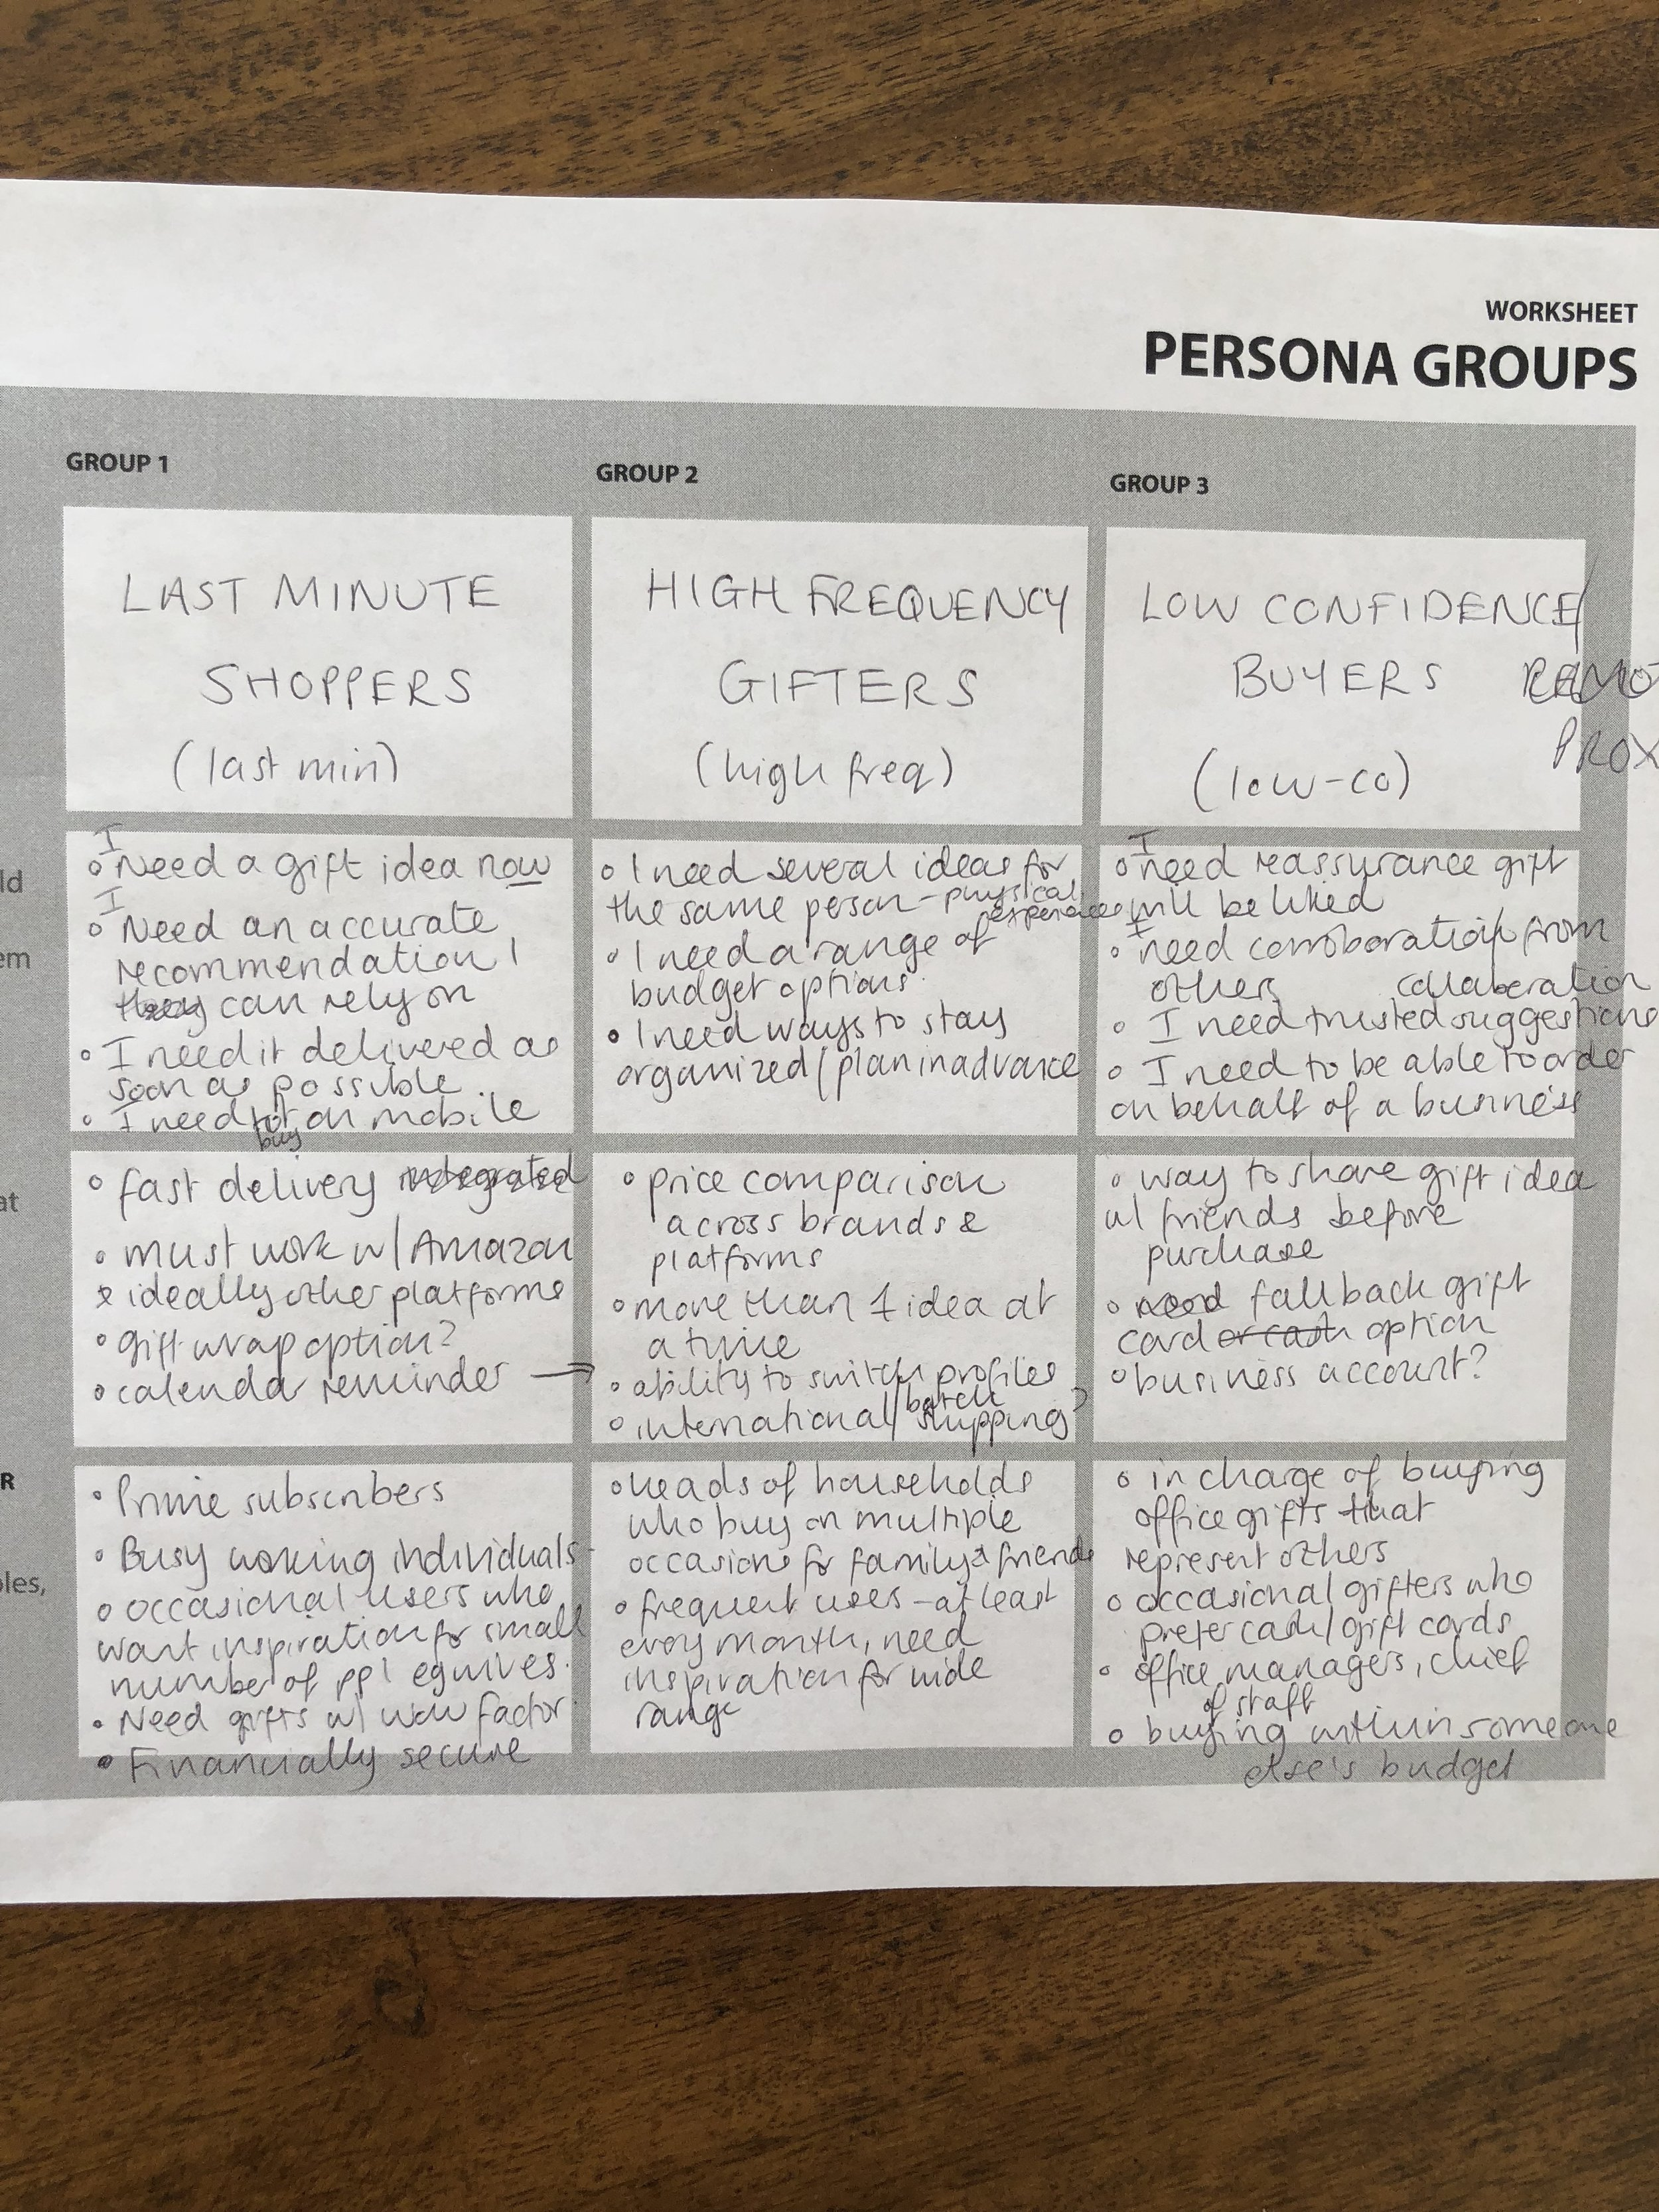 Workshopping different persona groups